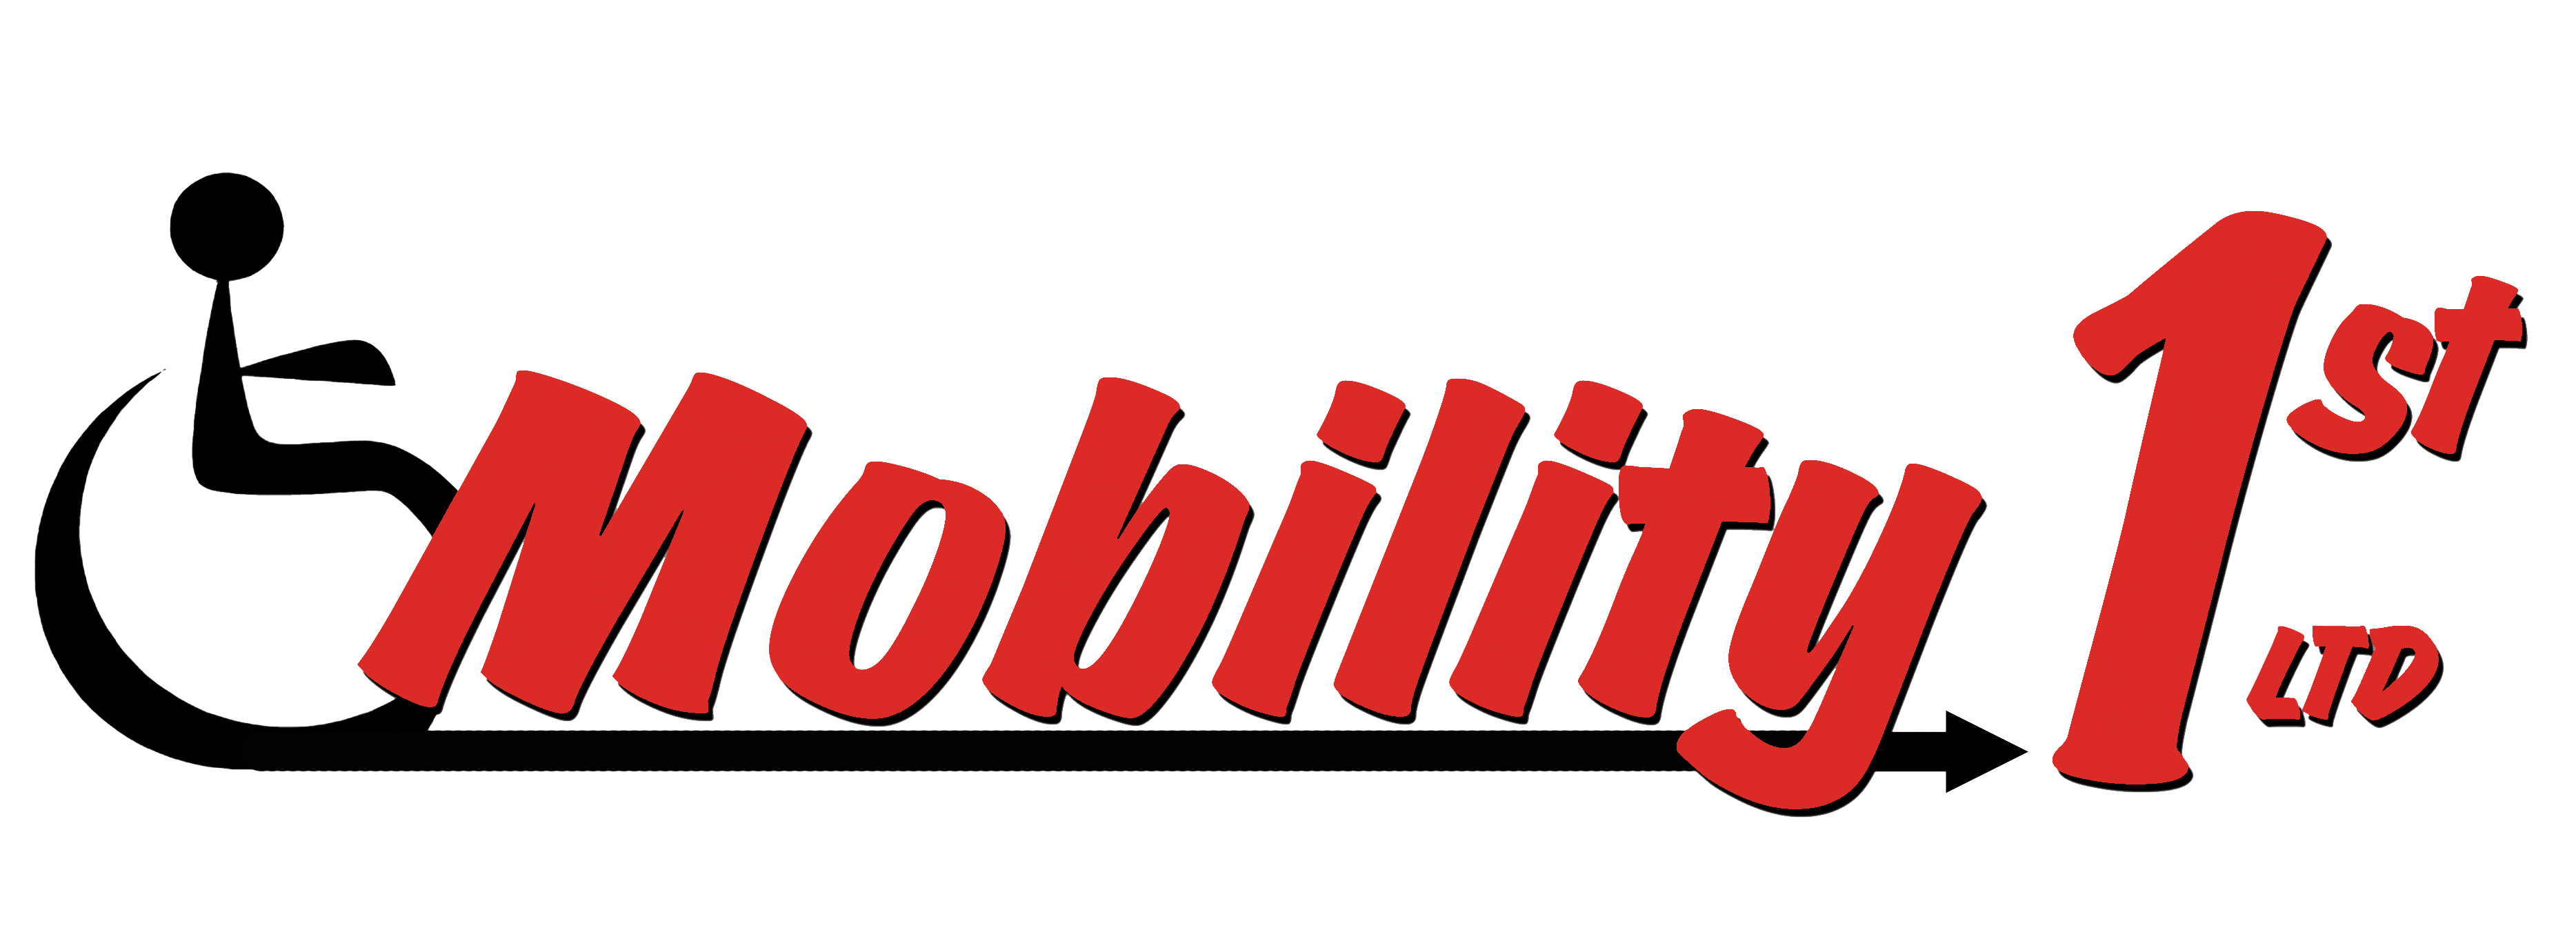 Mobility 1st Ltd | Affordable Independence | Mobility Store